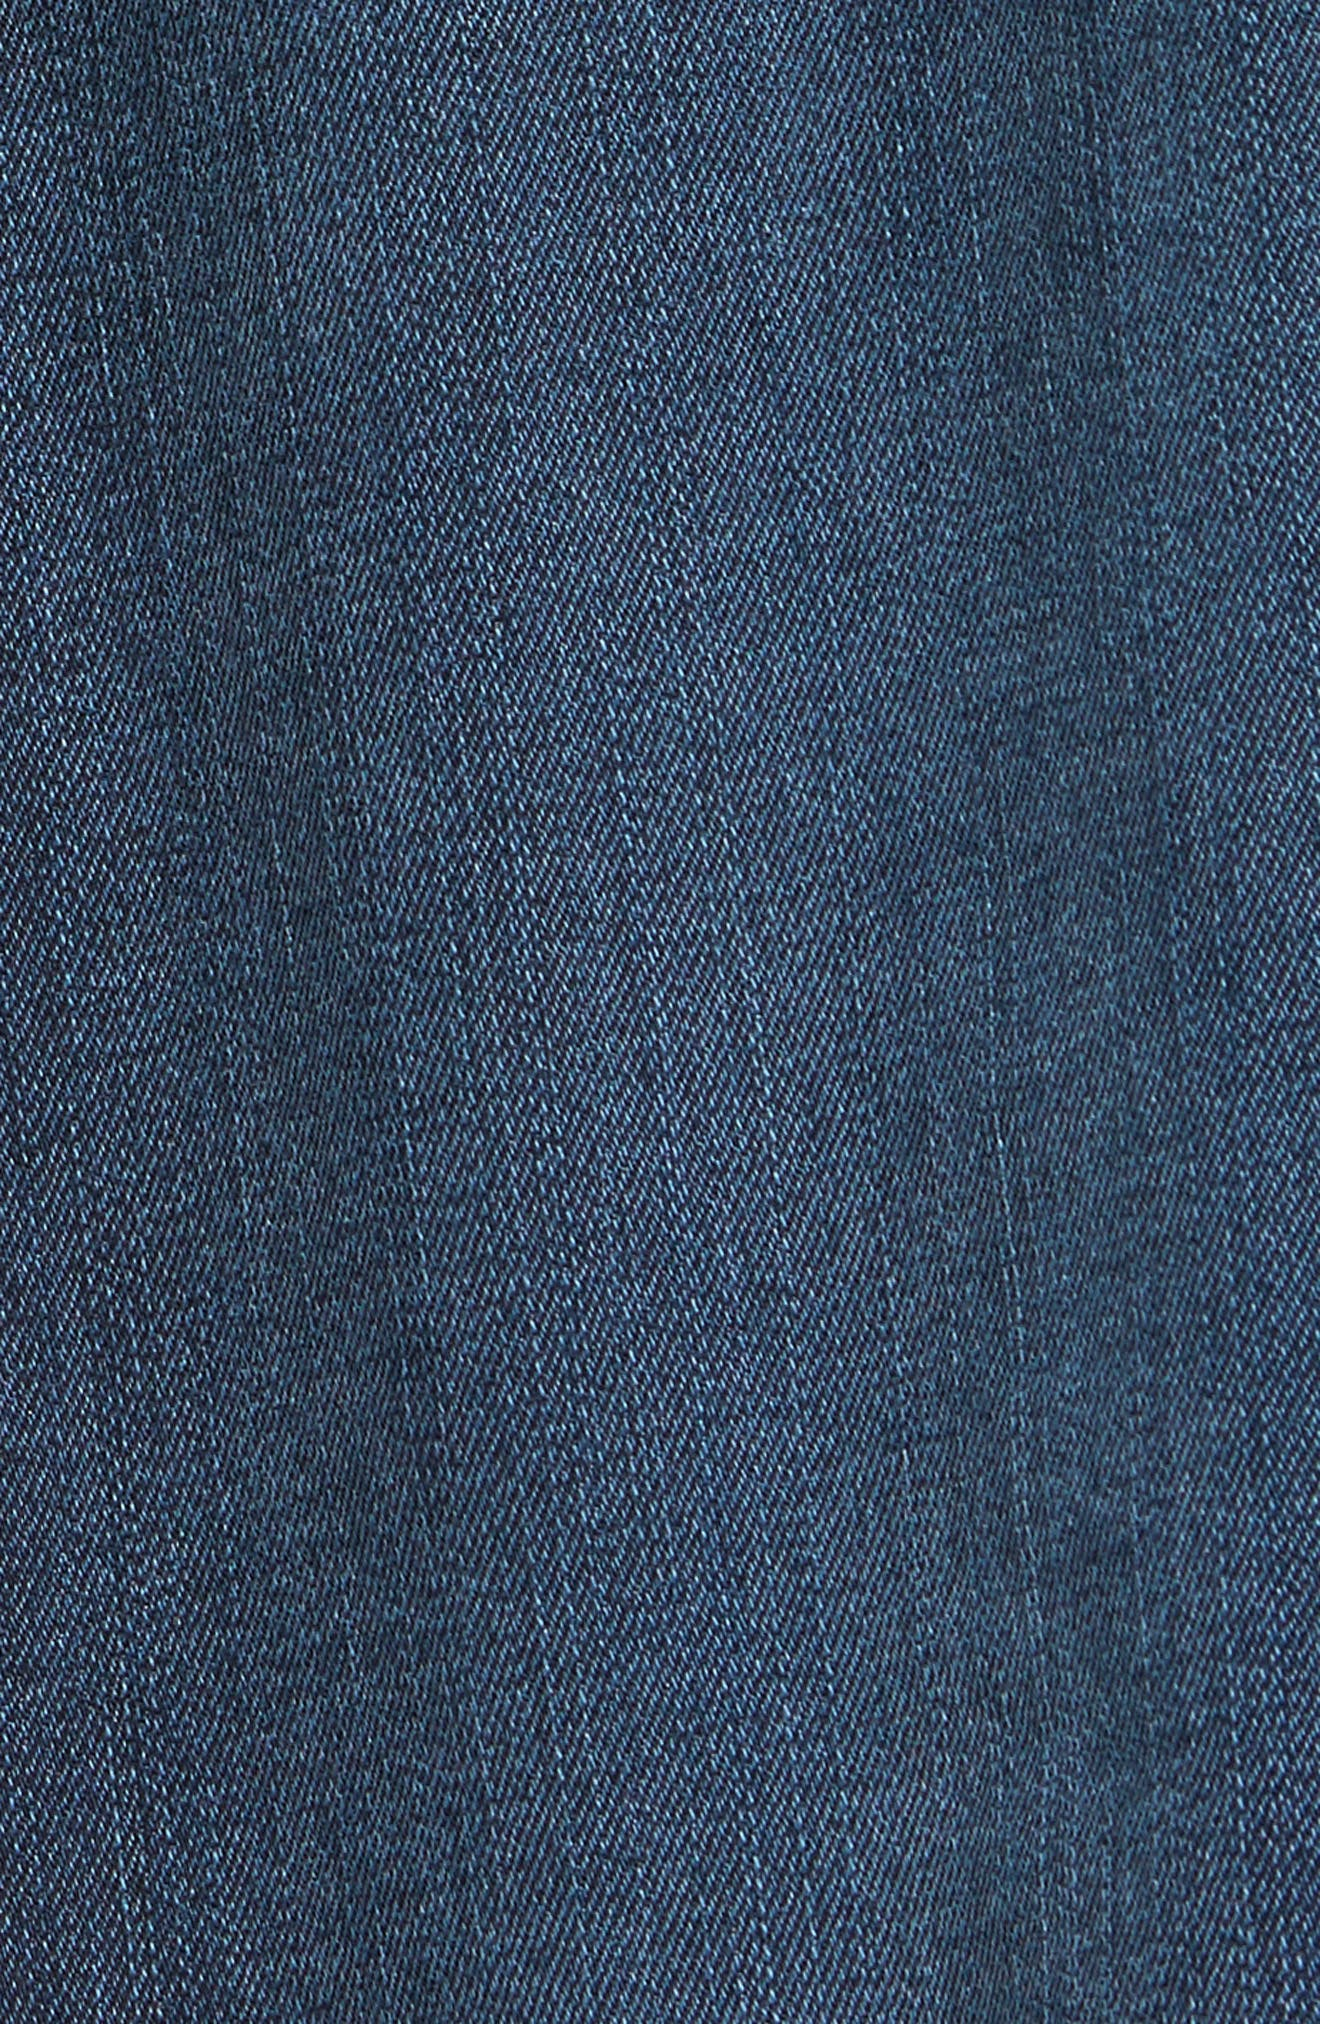 Reese Straight Leg Jeans,                             Alternate thumbnail 5, color,                             Stimulating